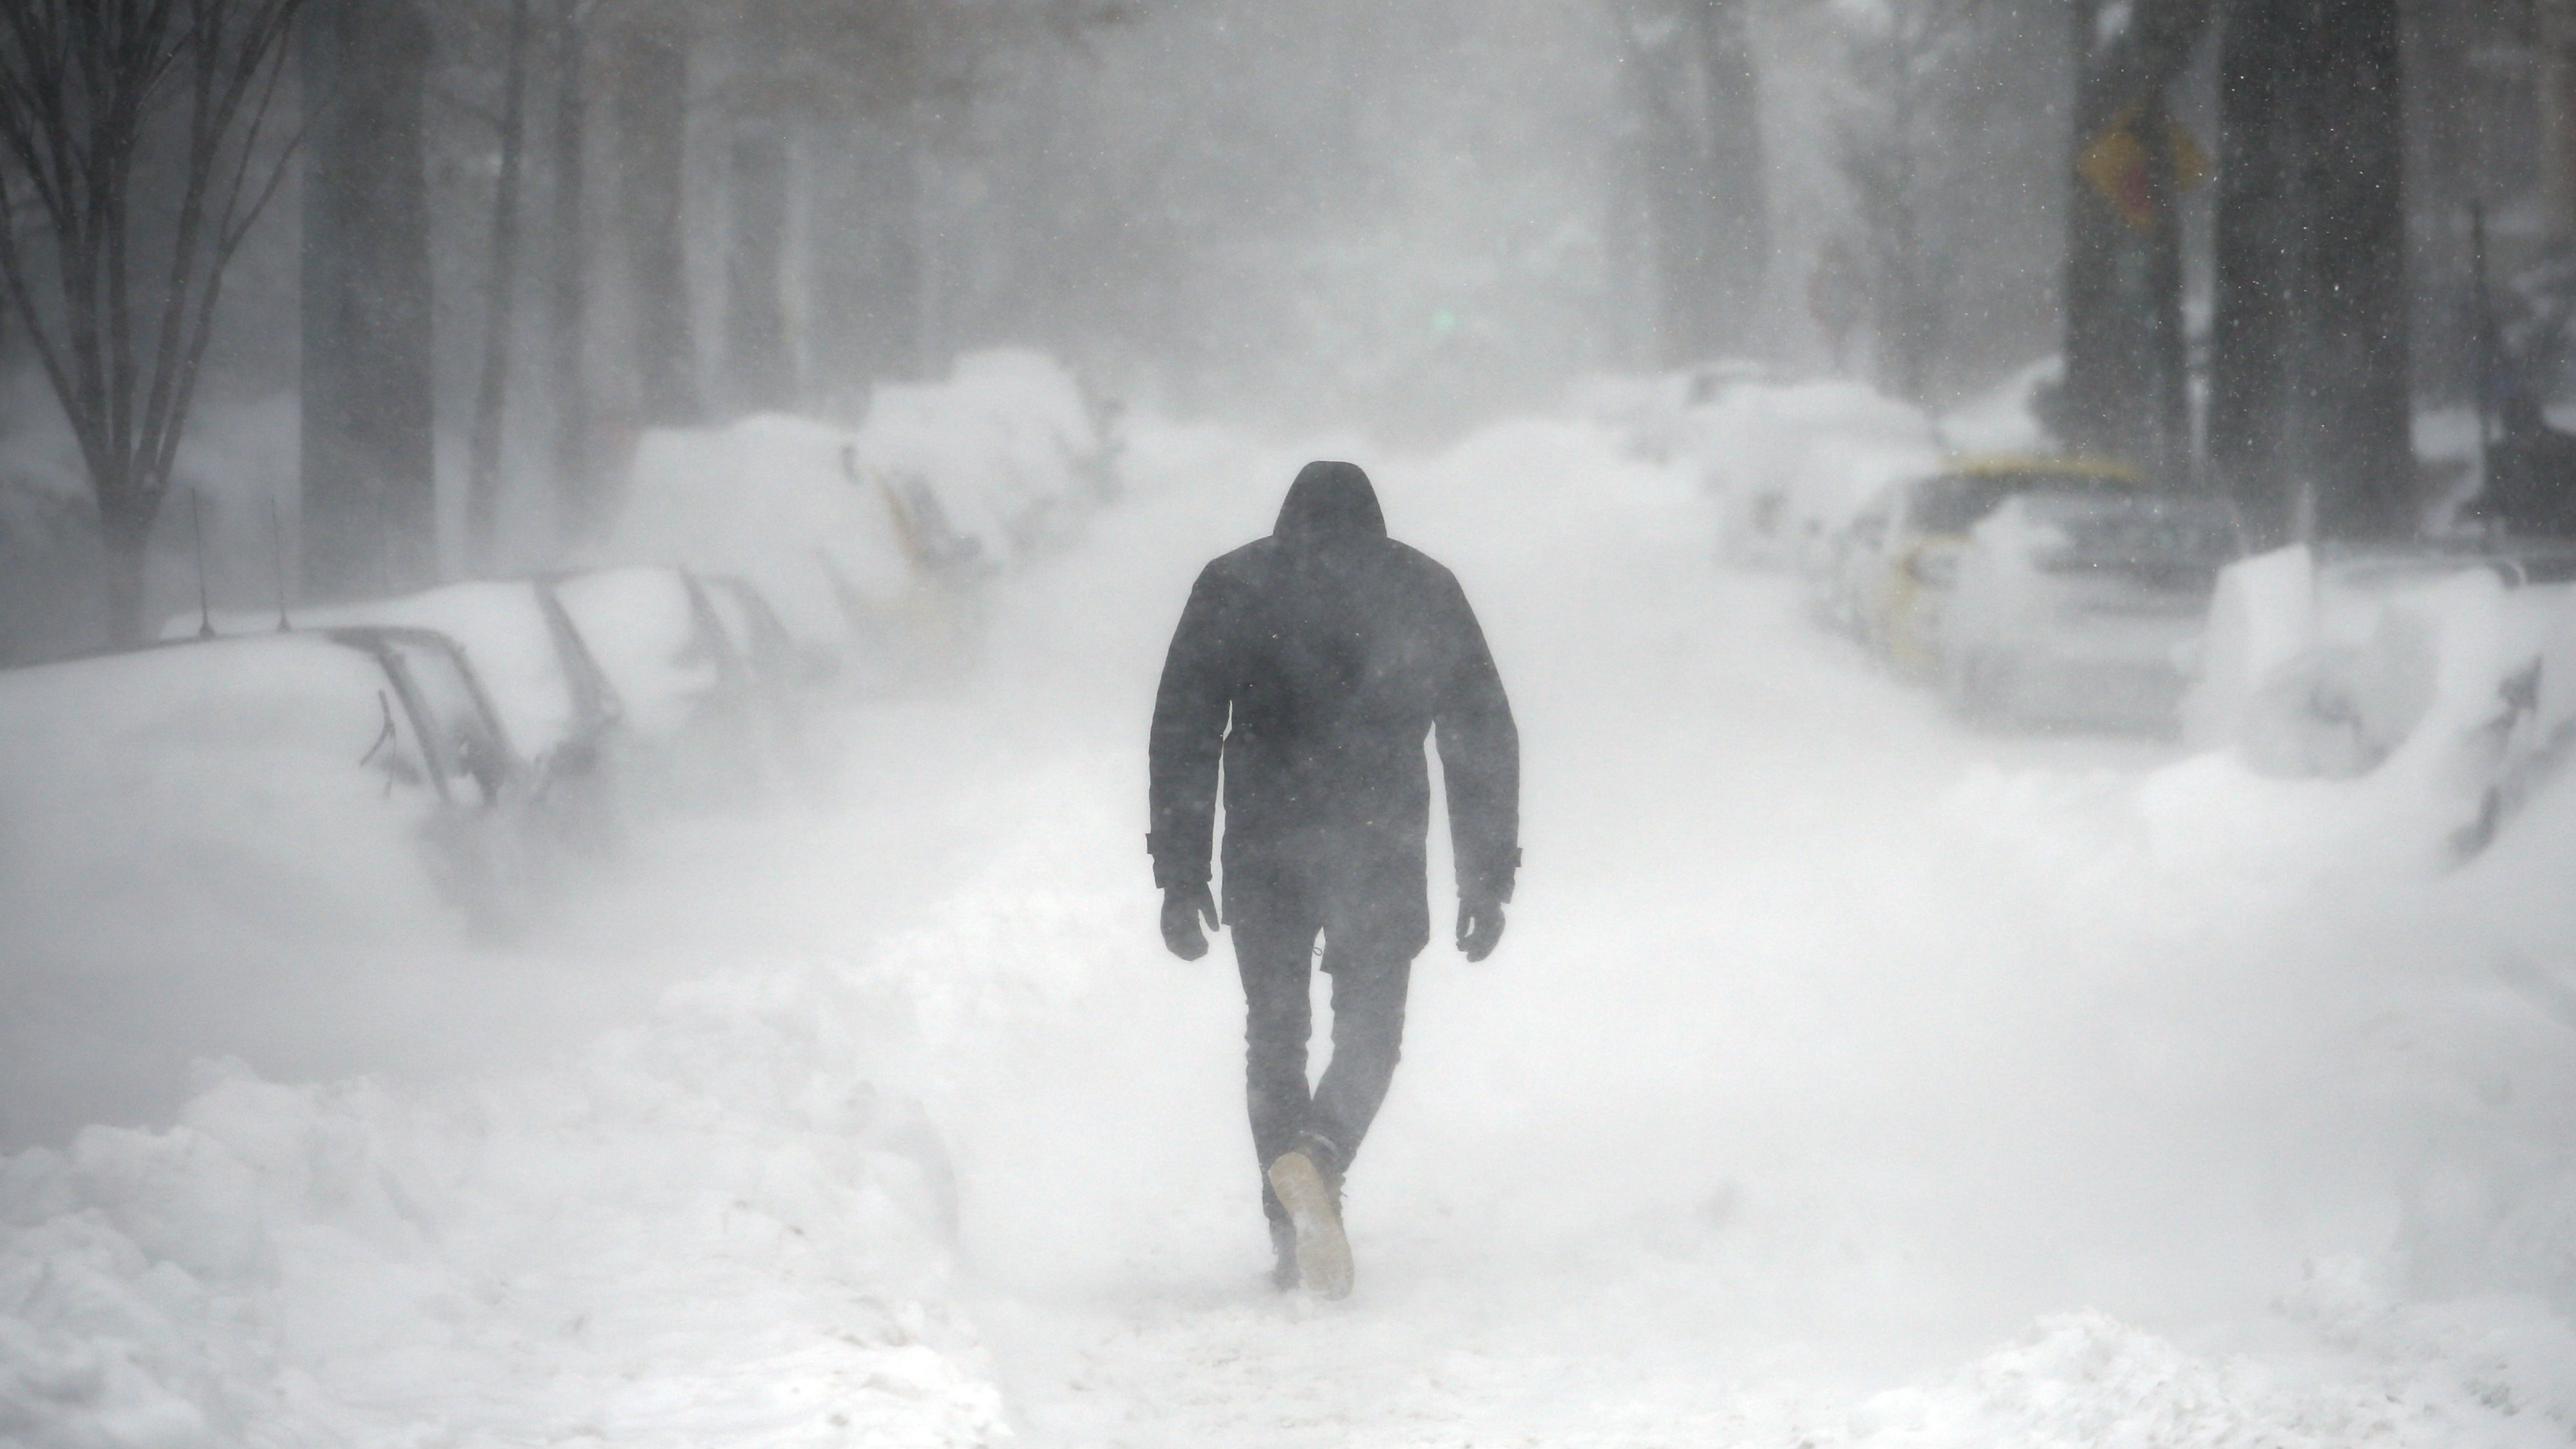 It could create one of the most intense winter storms the US has seen in decades.